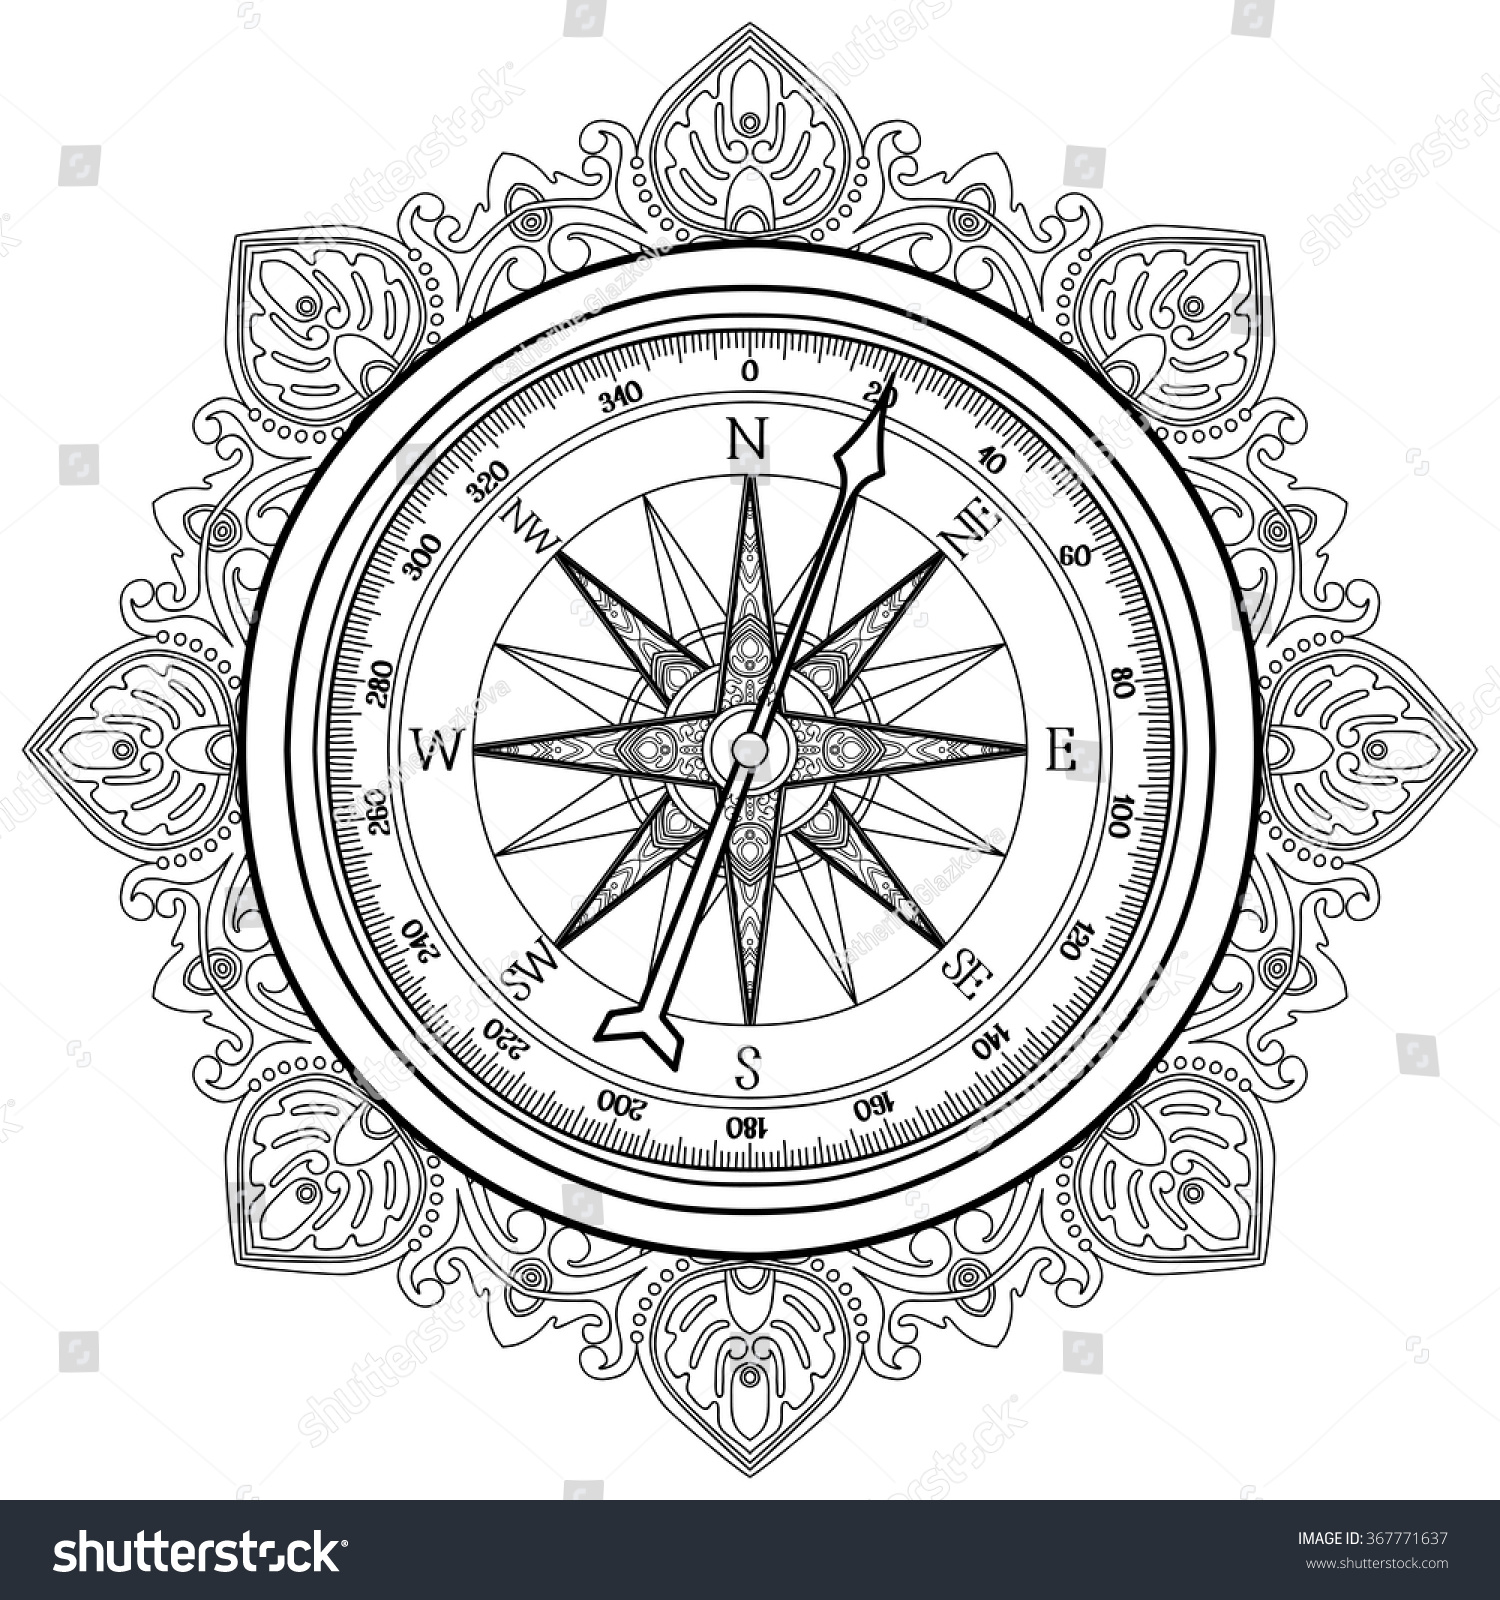 Graphic Wind Rose Compass Drawn In Line Art Style